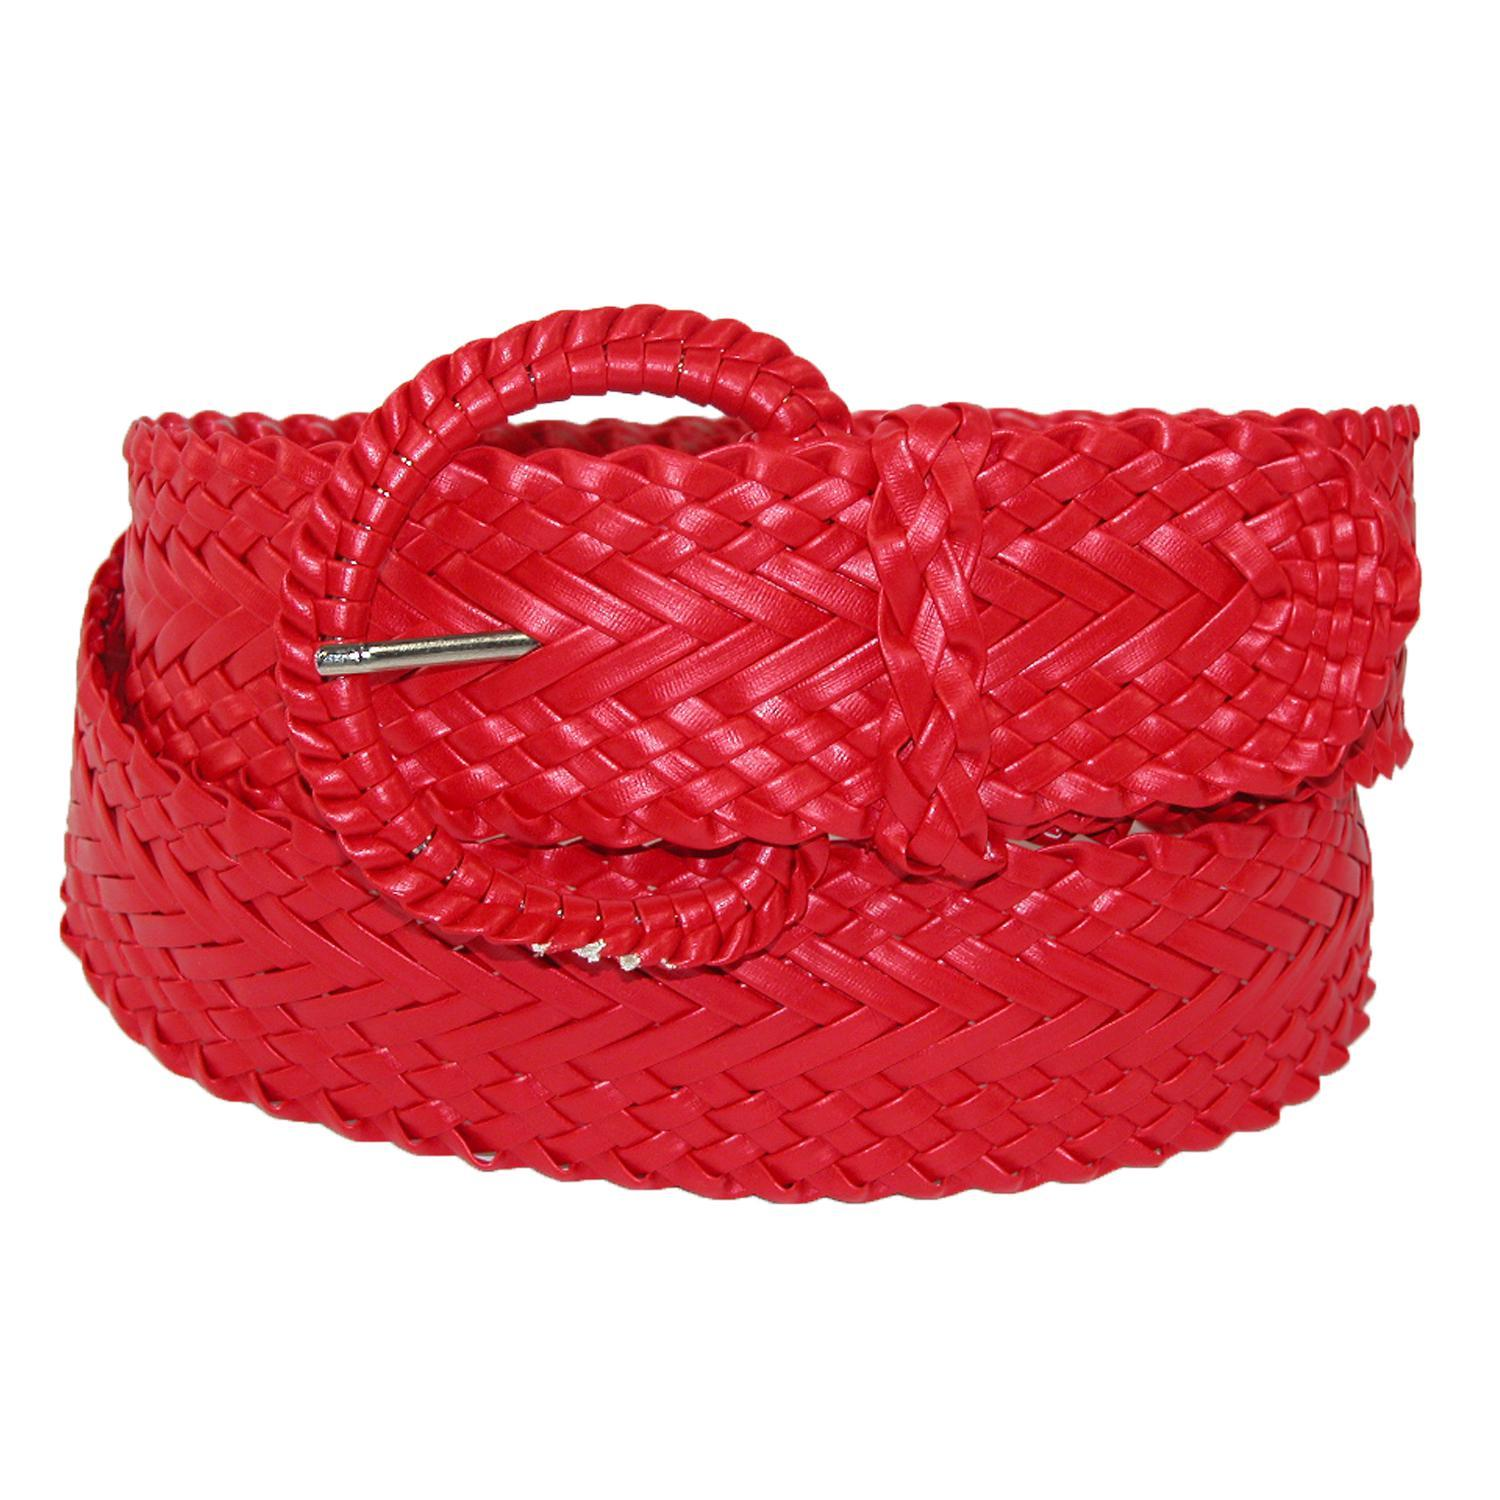 CTM_Womens_2_Inch_Wide_Adjustable_Braided_Belt_